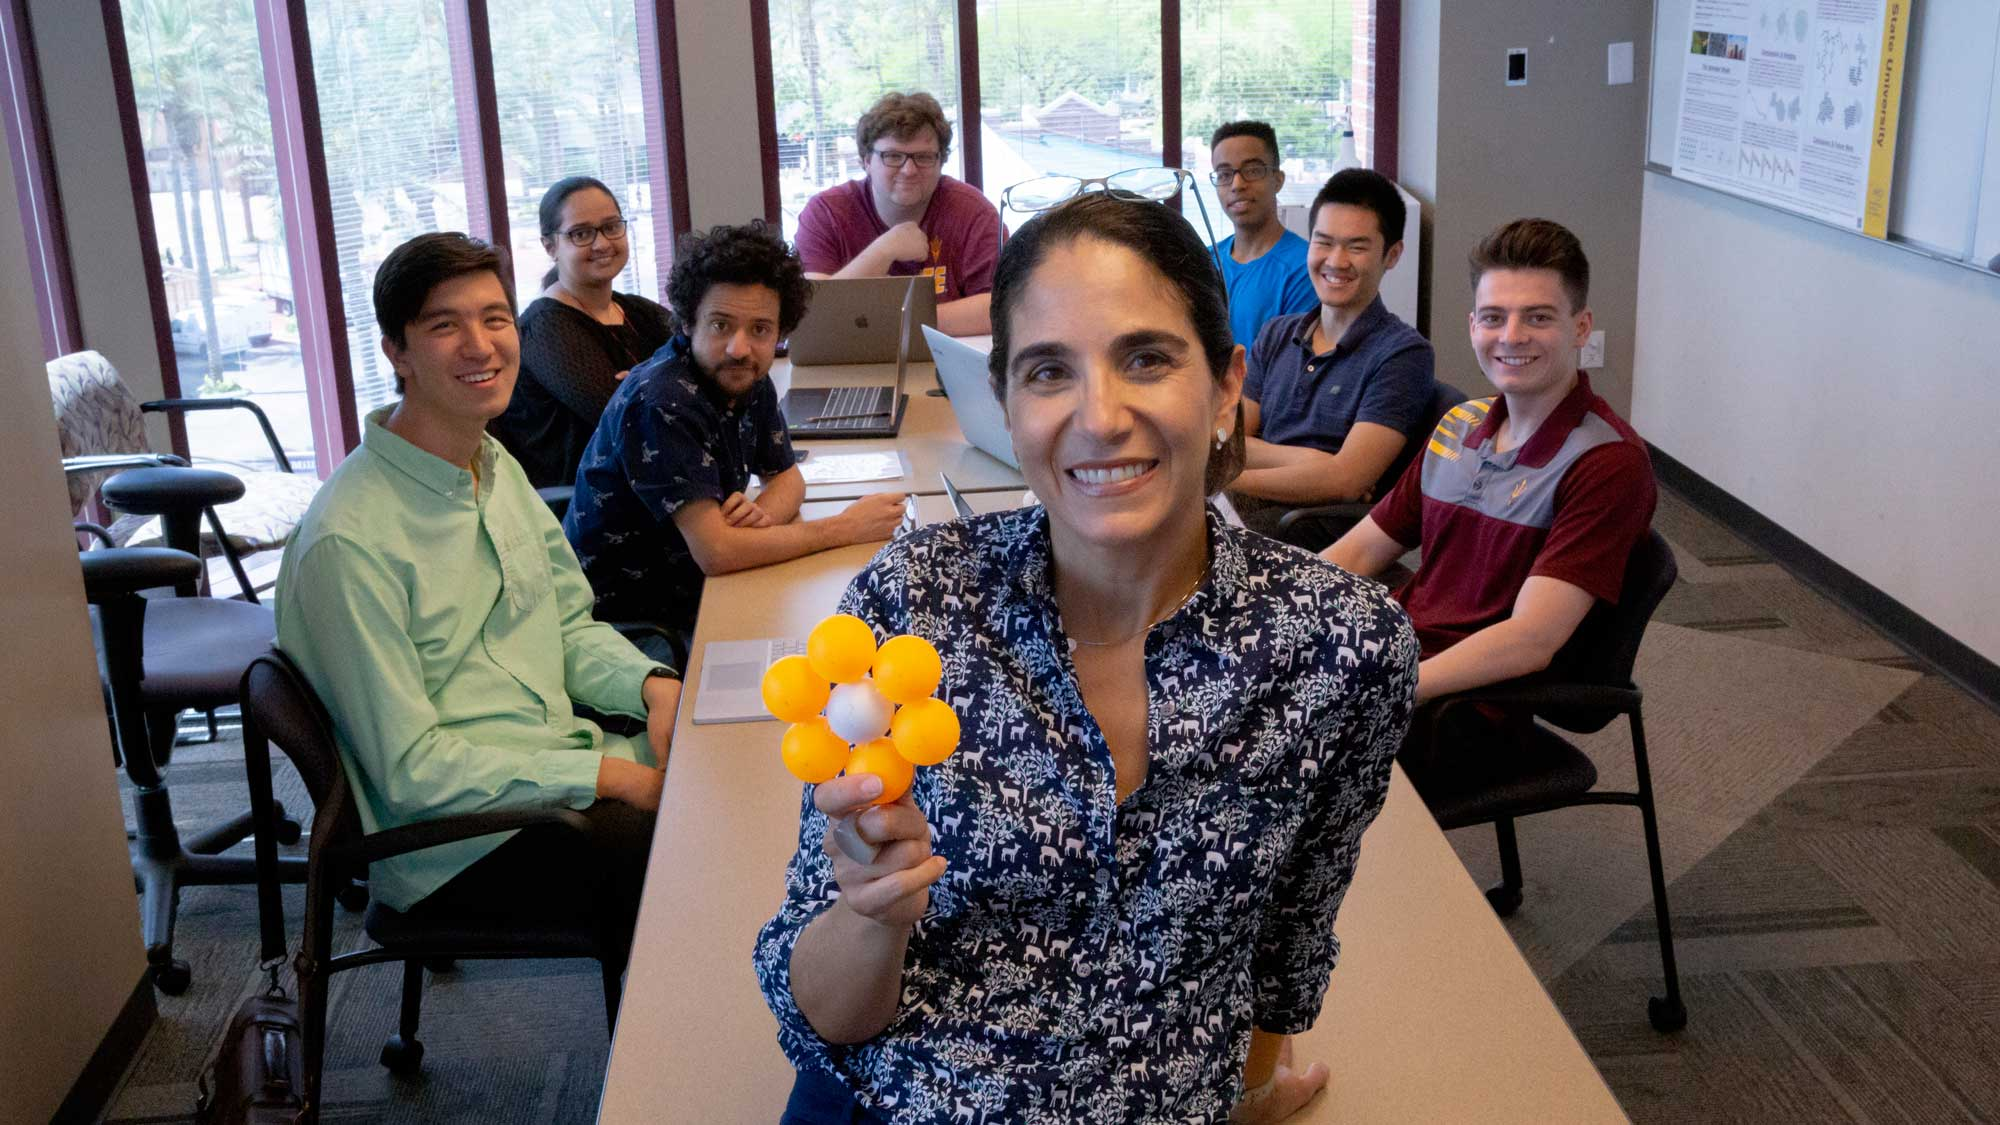 Andrea Richa stands smiling in front of a table full of her researchers in a classroom